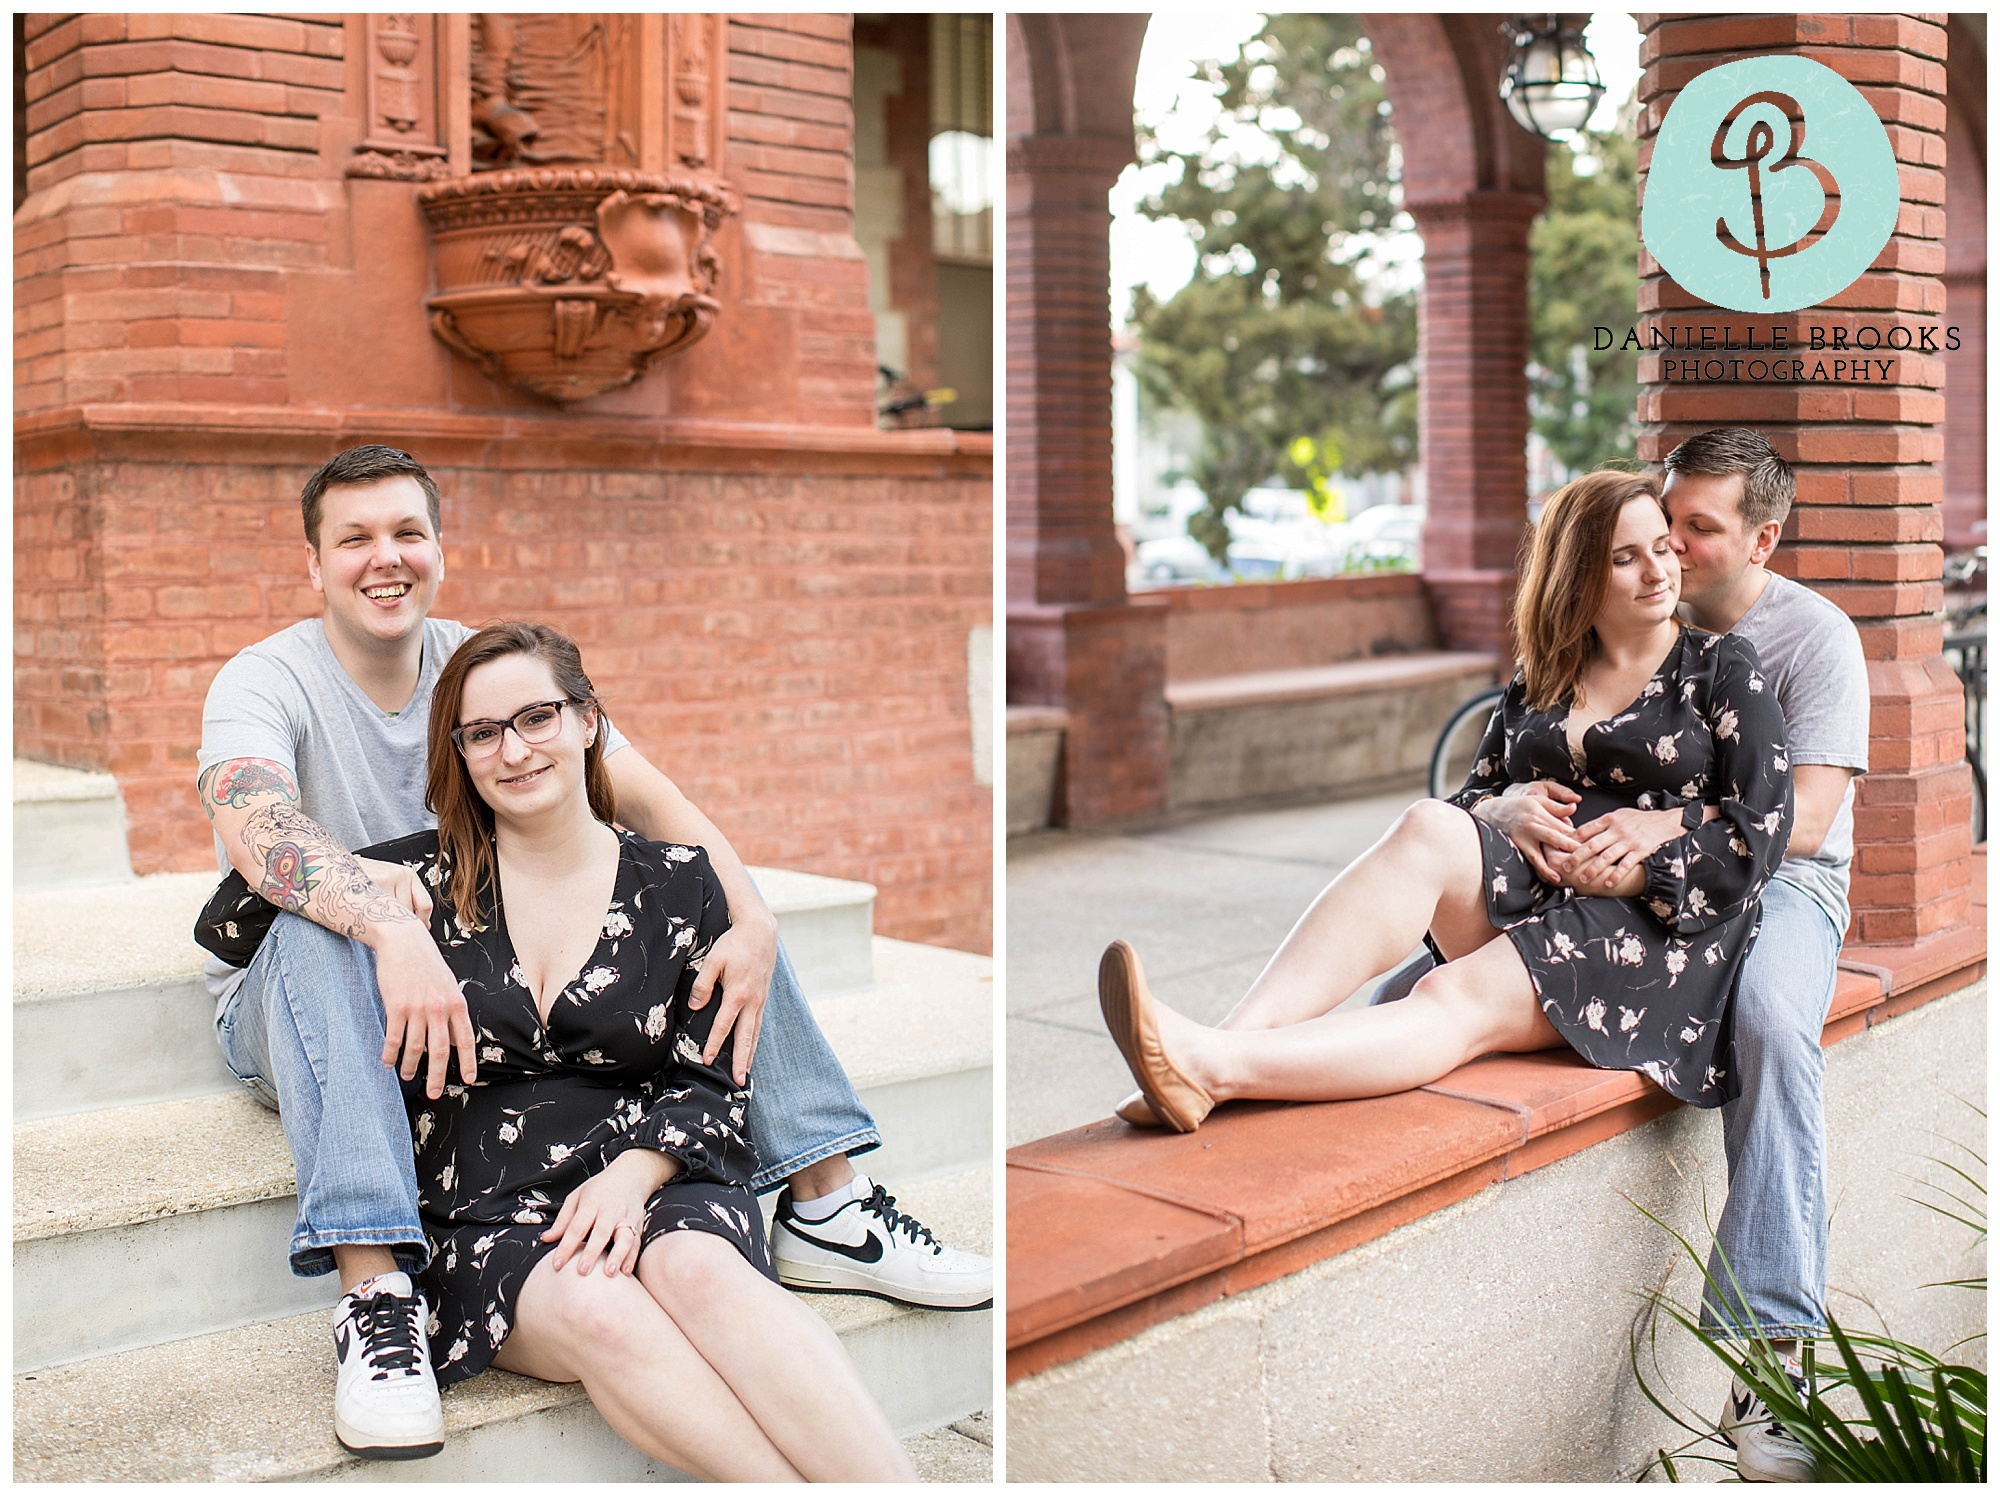 Photos By: Danielle Brooks Photography